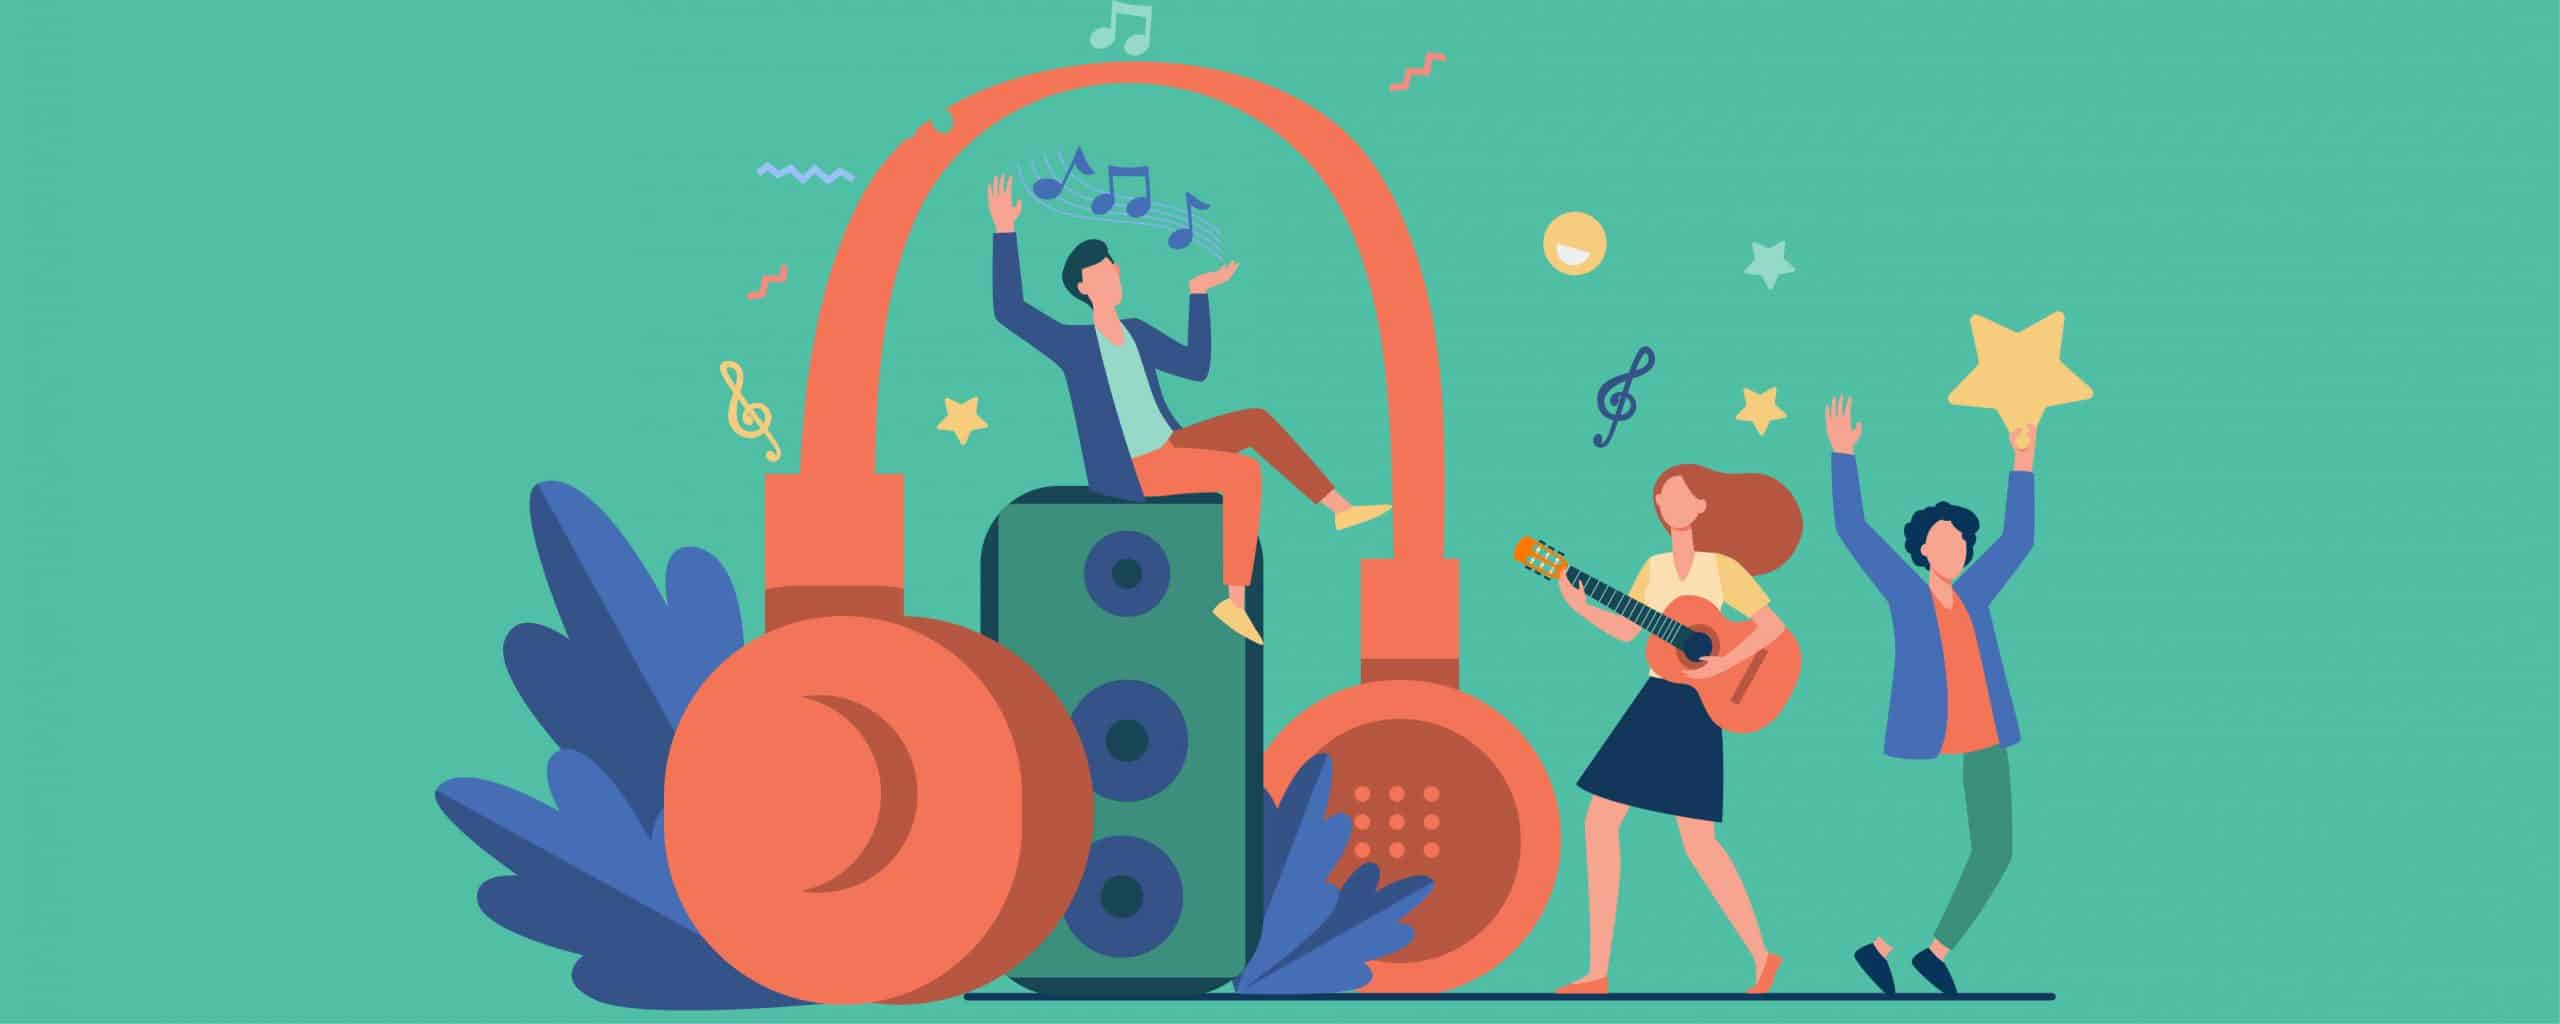 How To Get The Most From Your Music